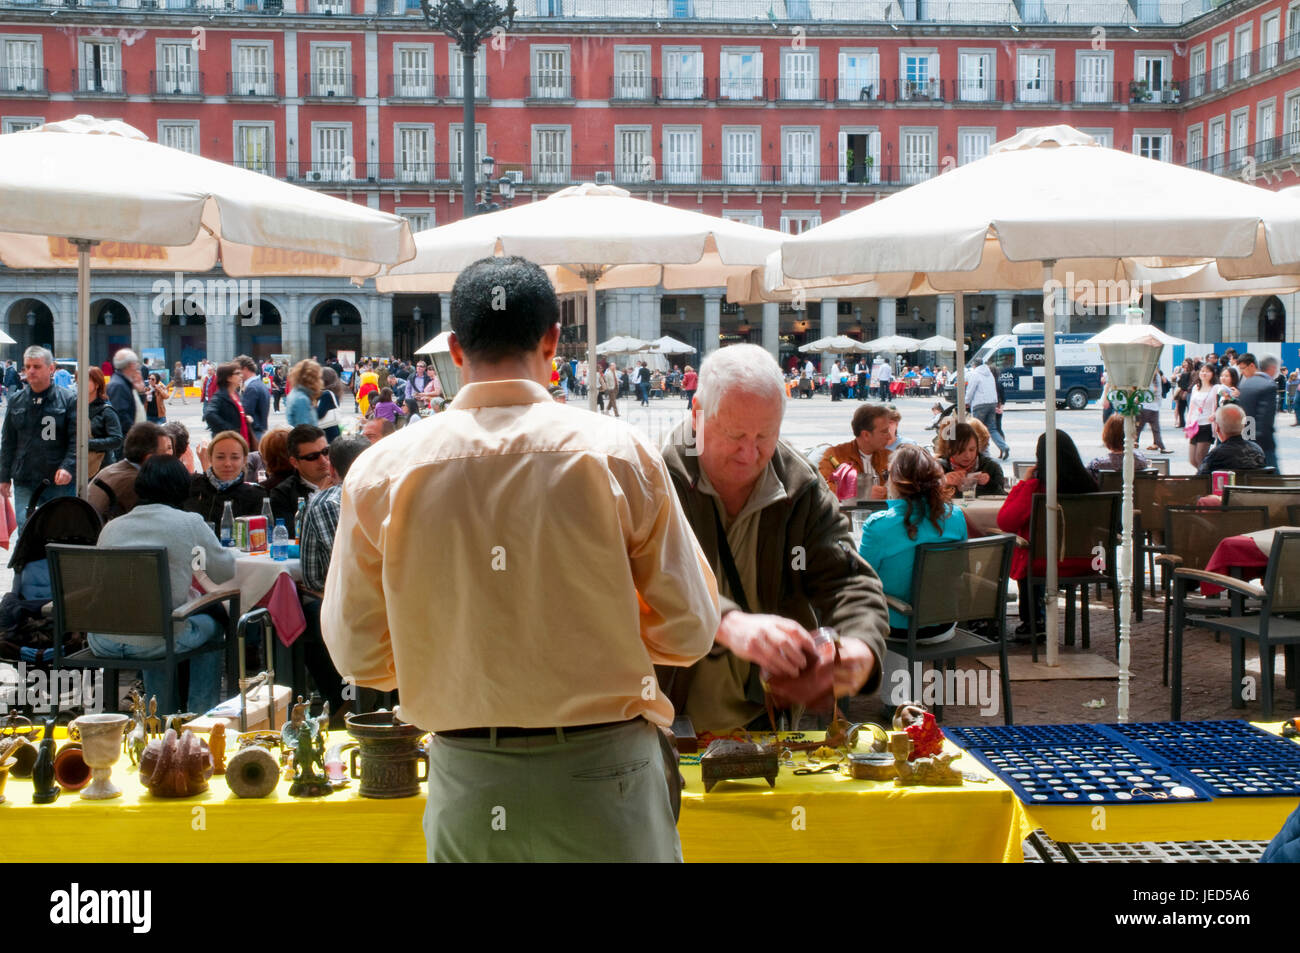 Mercado de pulgas. Plaza Mayor, Madrid, España. Foto de stock